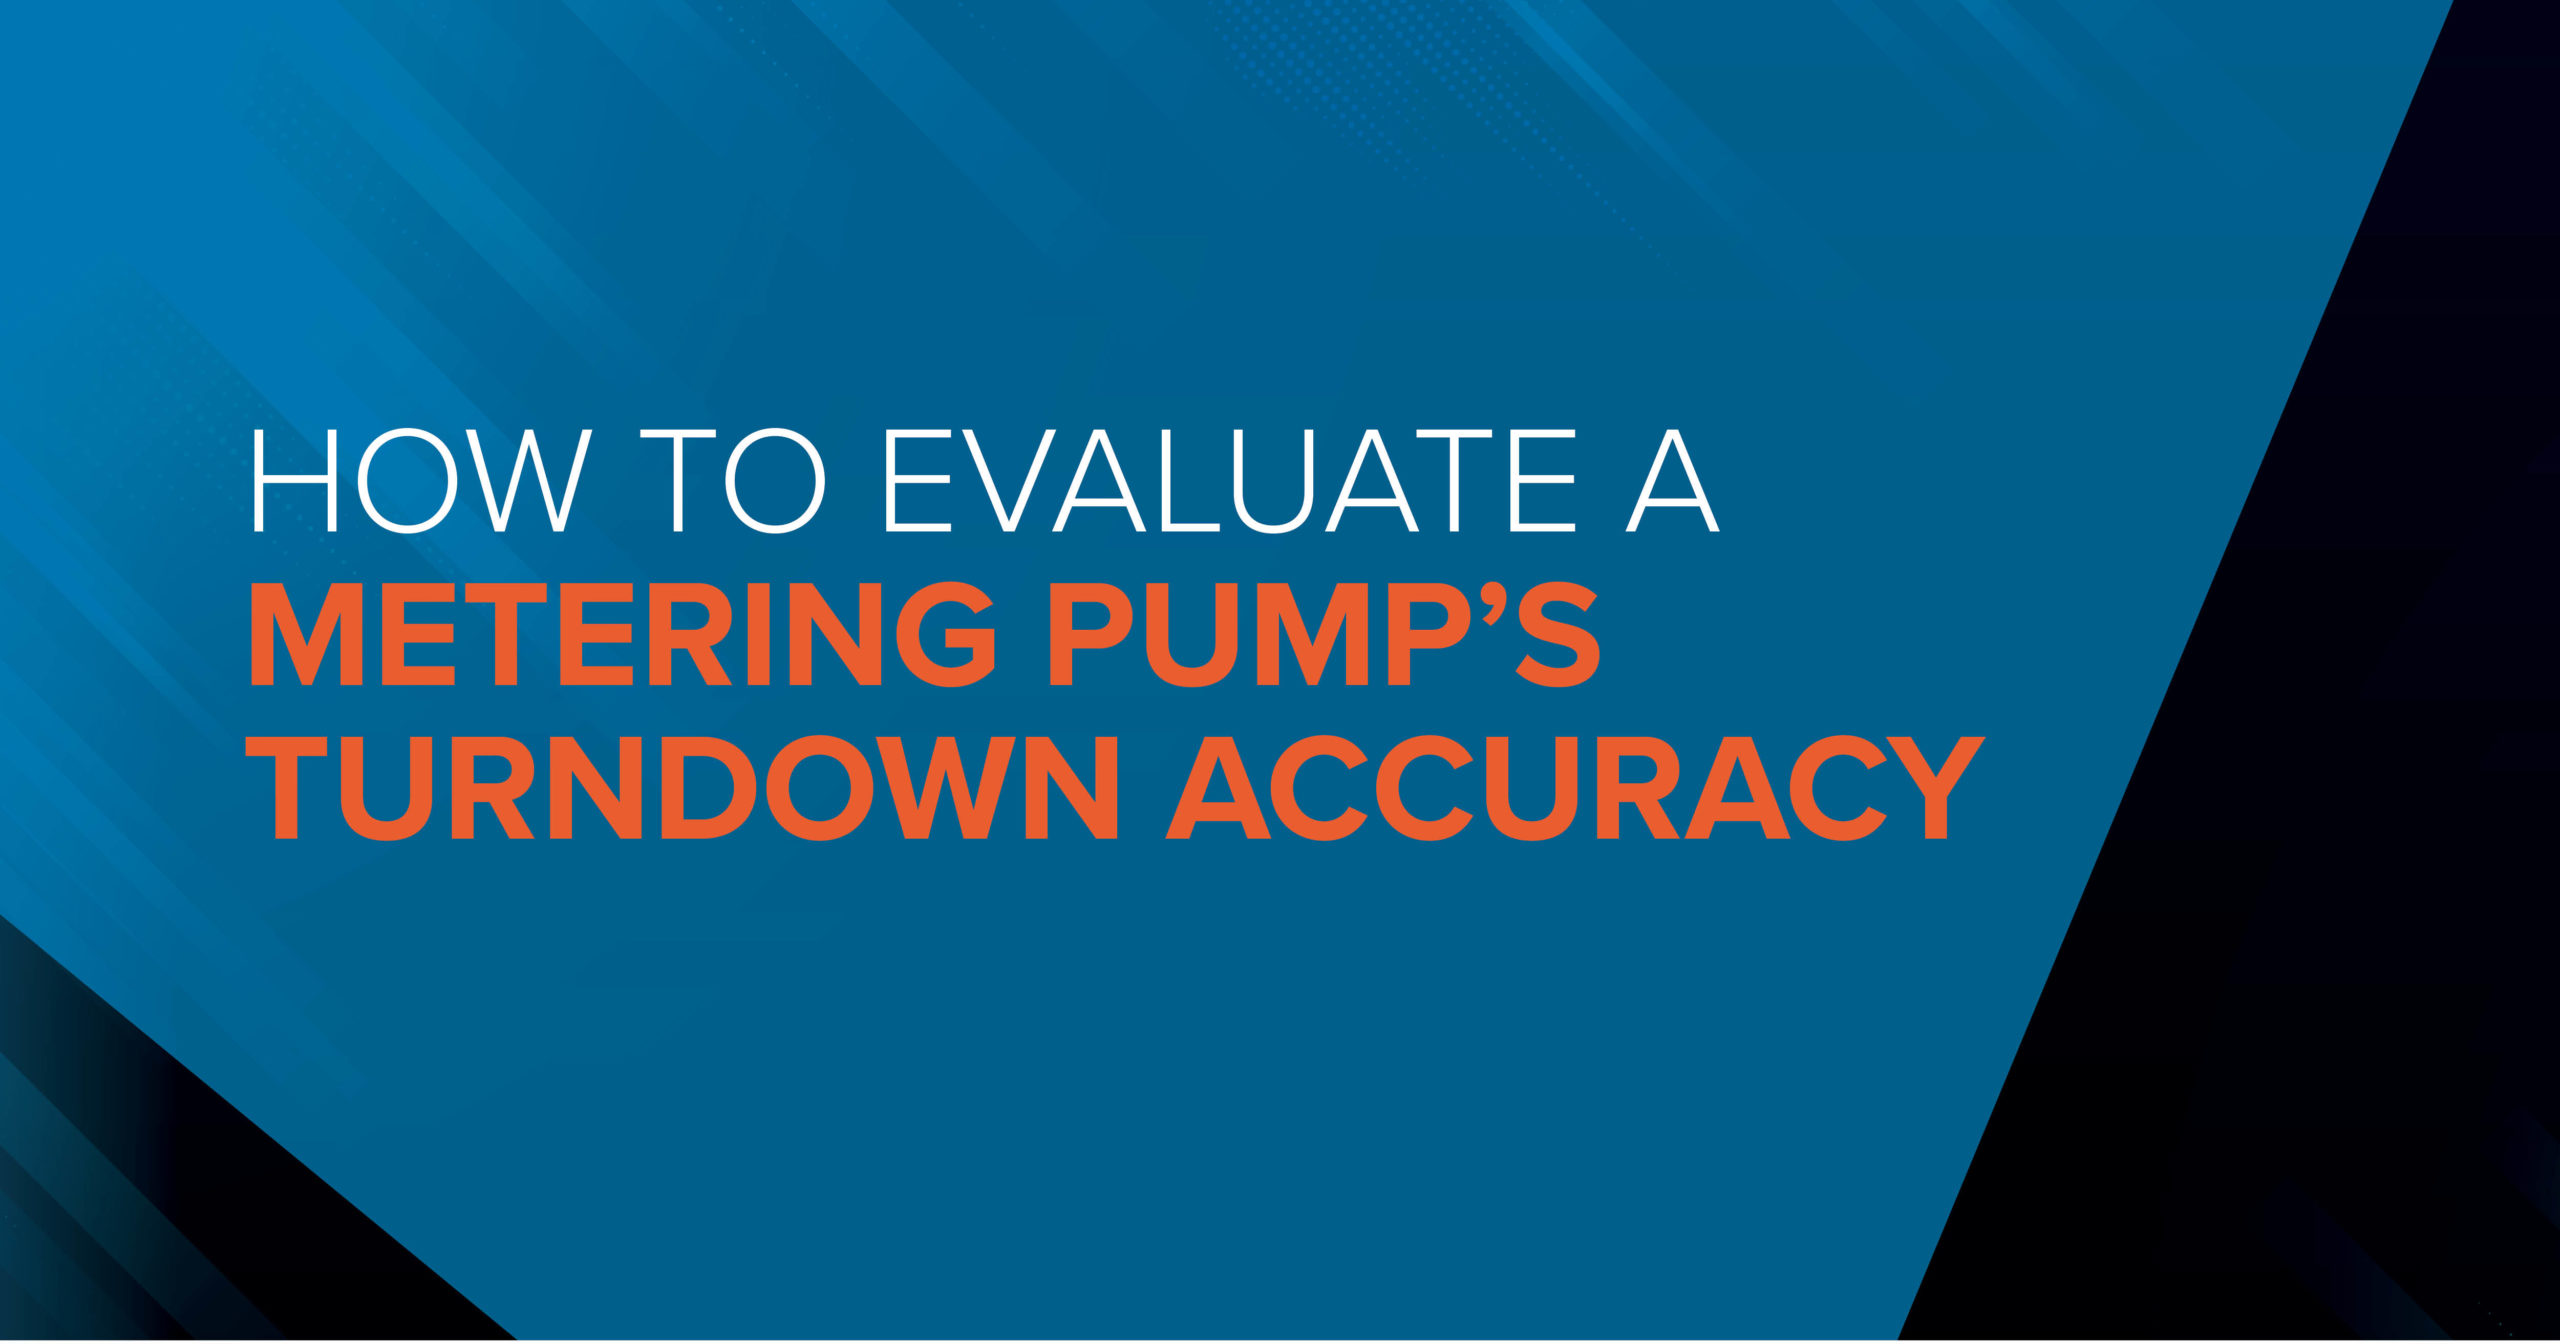 How to Evaluate a Metering Pump's Turndown Accuracy